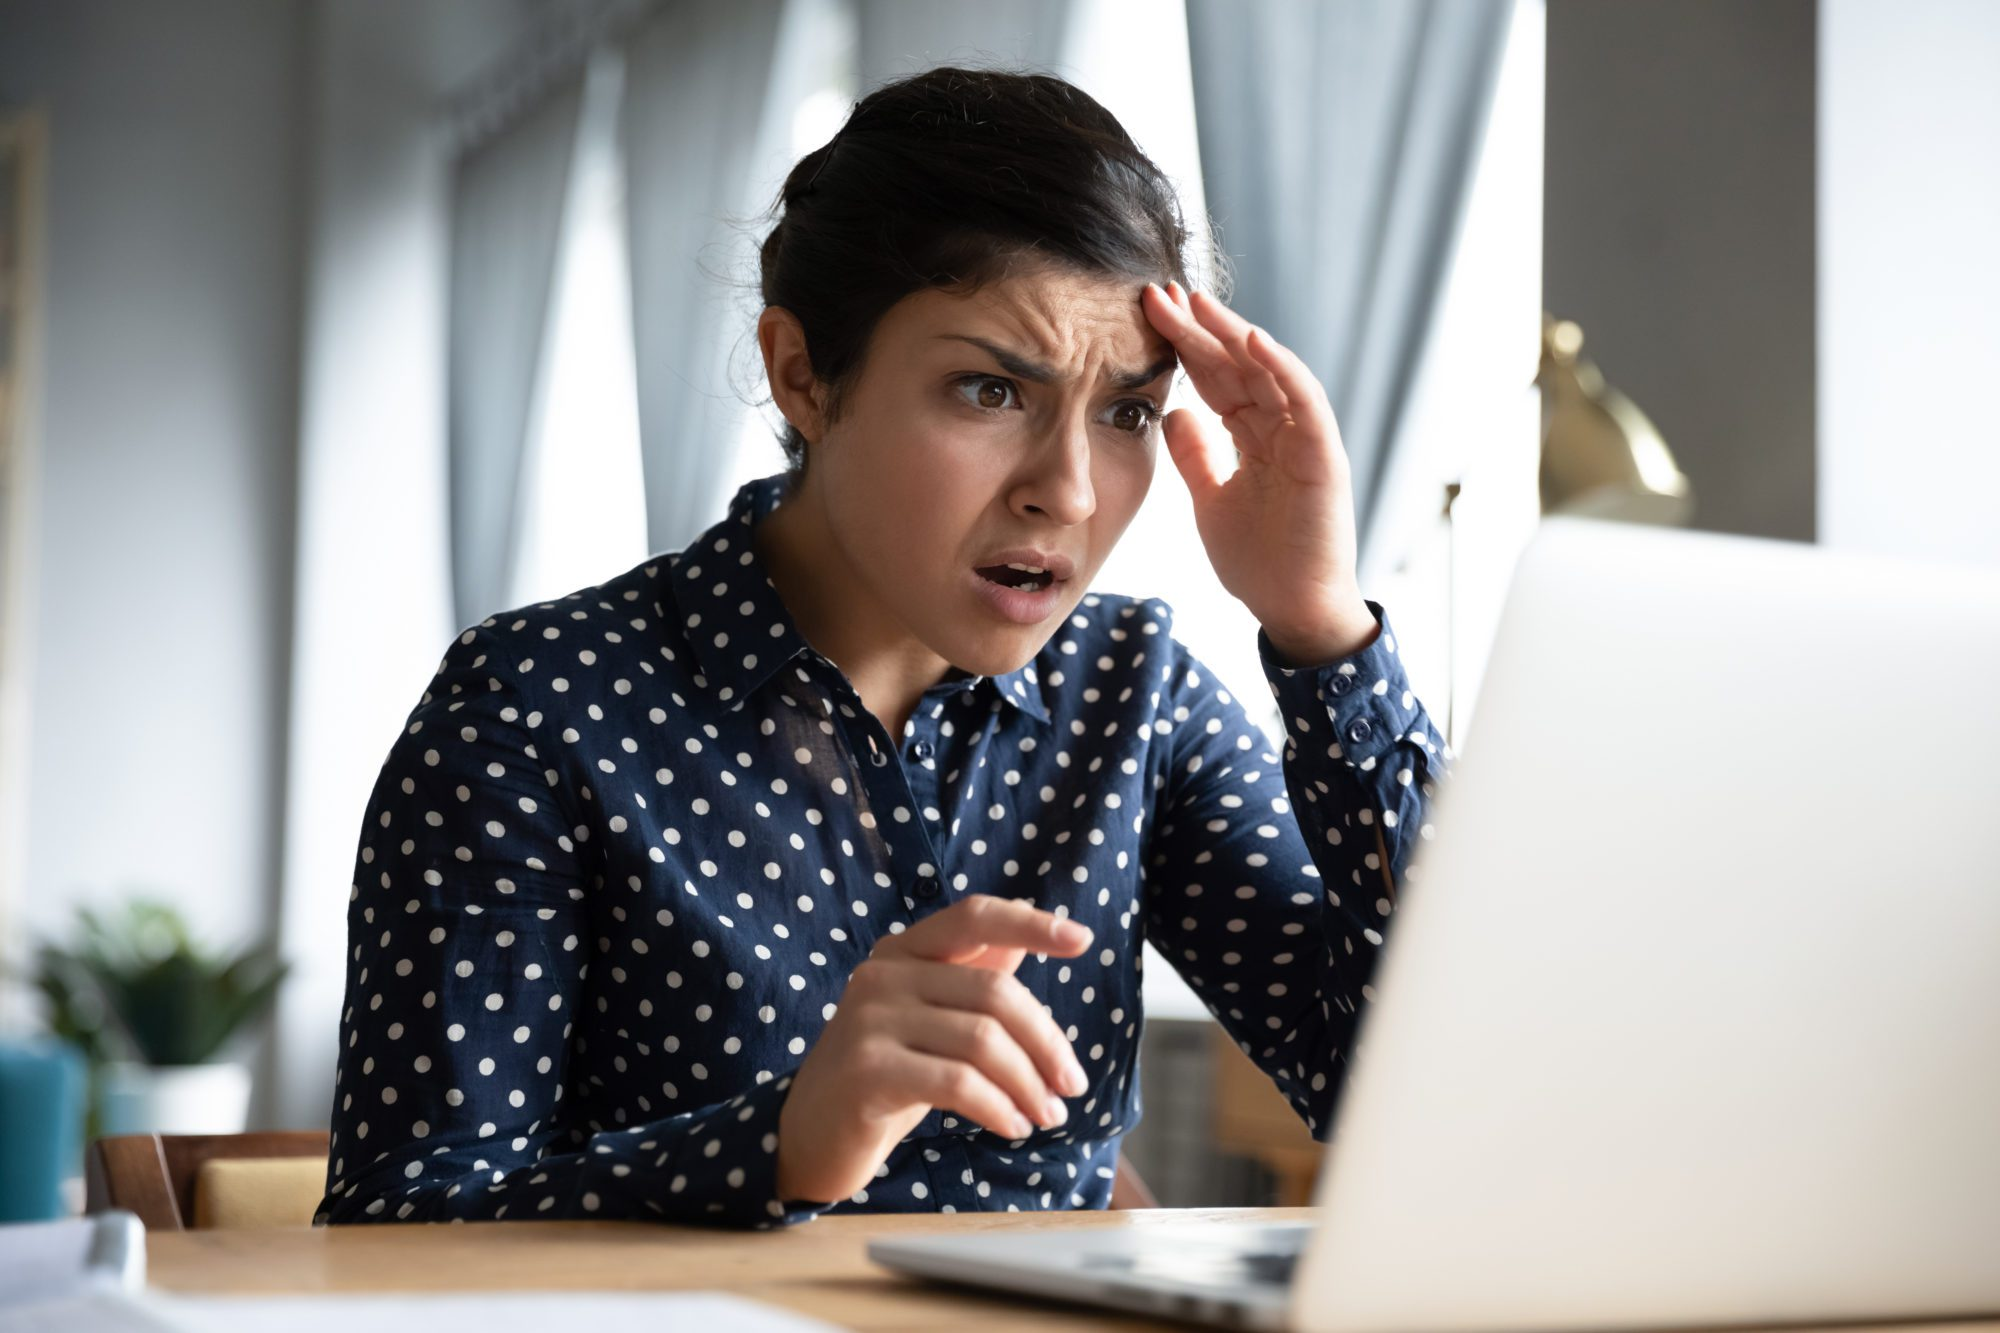 Shocked girl look at laptop computer screen at home office